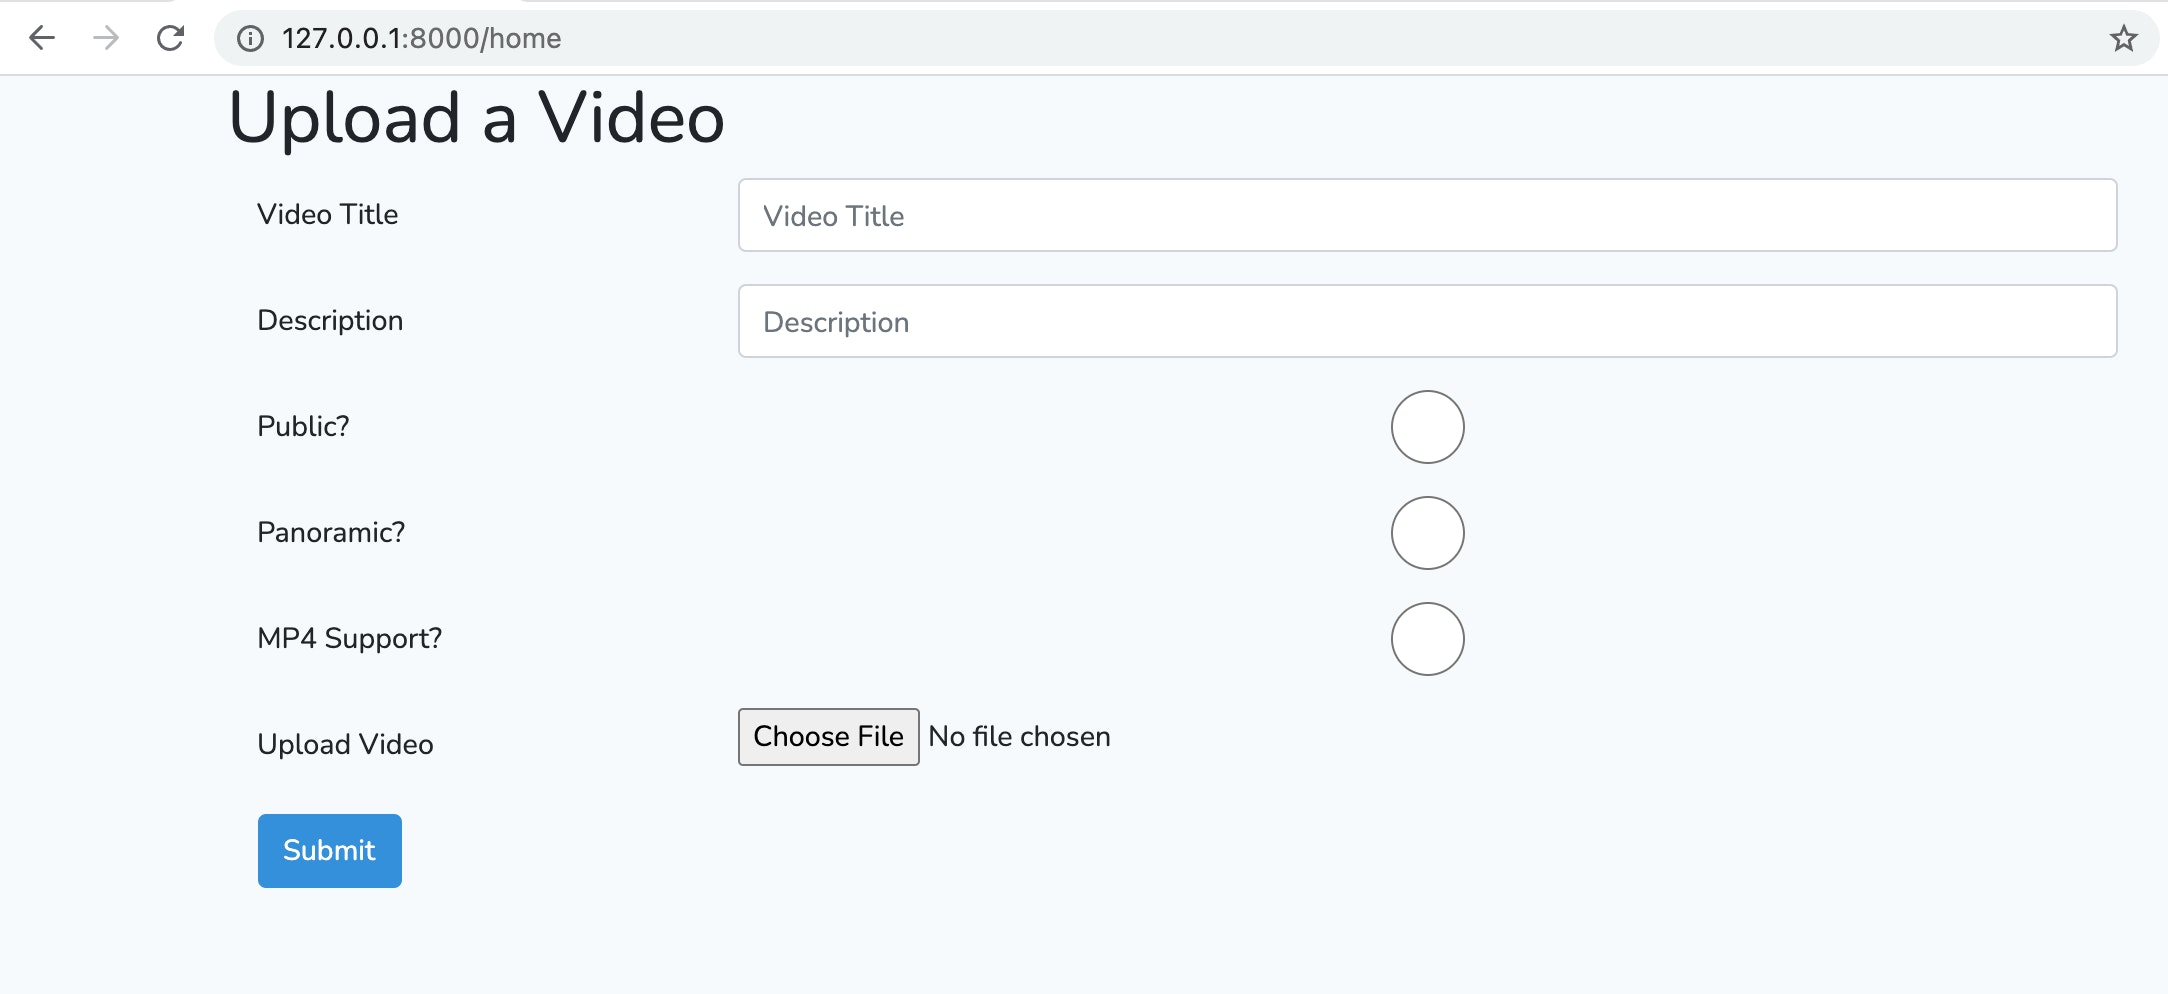 Image of upload form showing available fields